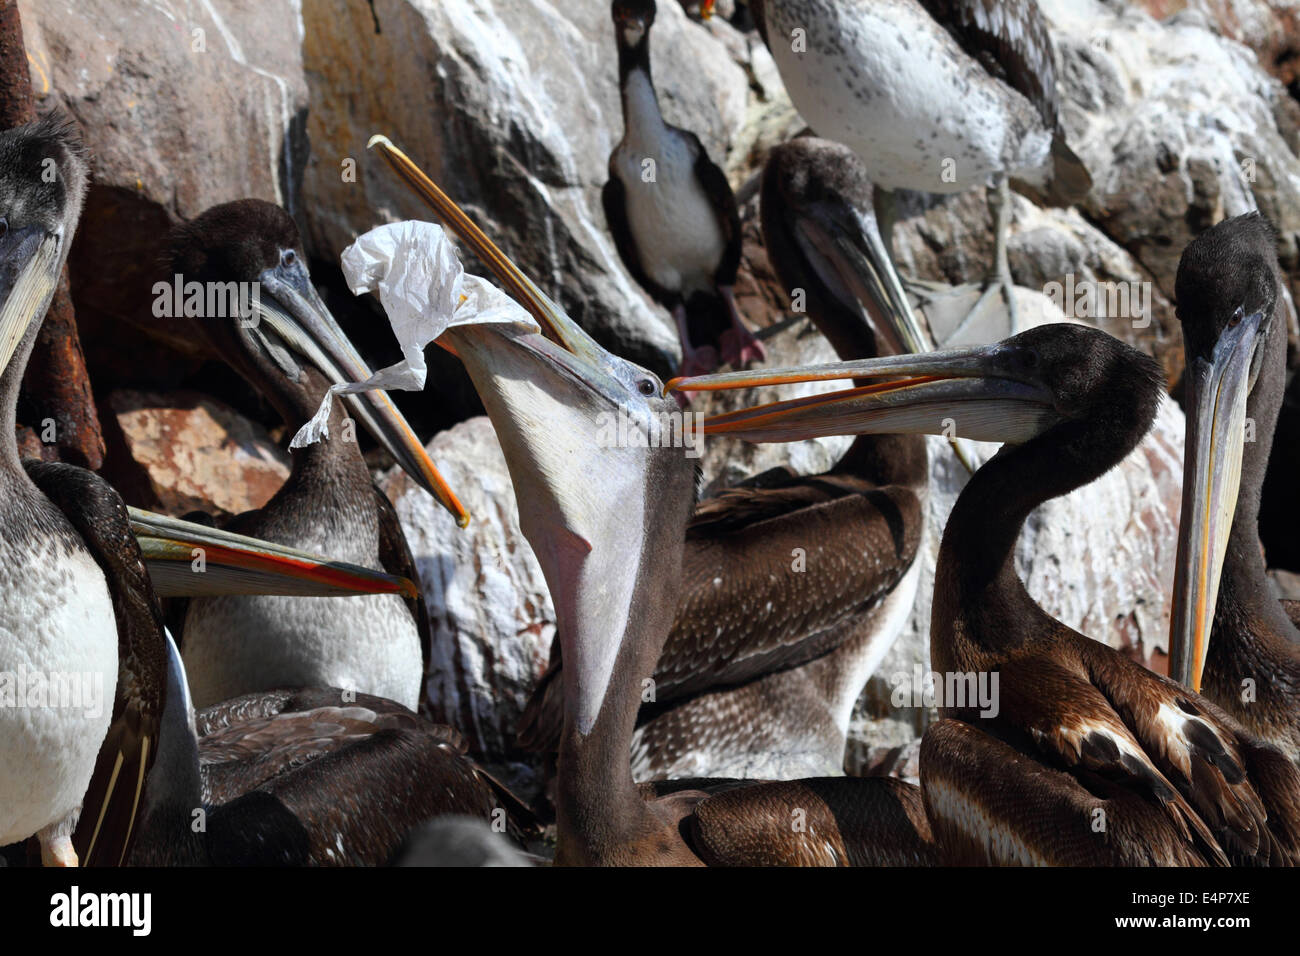 Young Peruvian pelican (Pelecanus thagus) with a beak pouch full of plastic bag, Arica, Chile - Stock Image